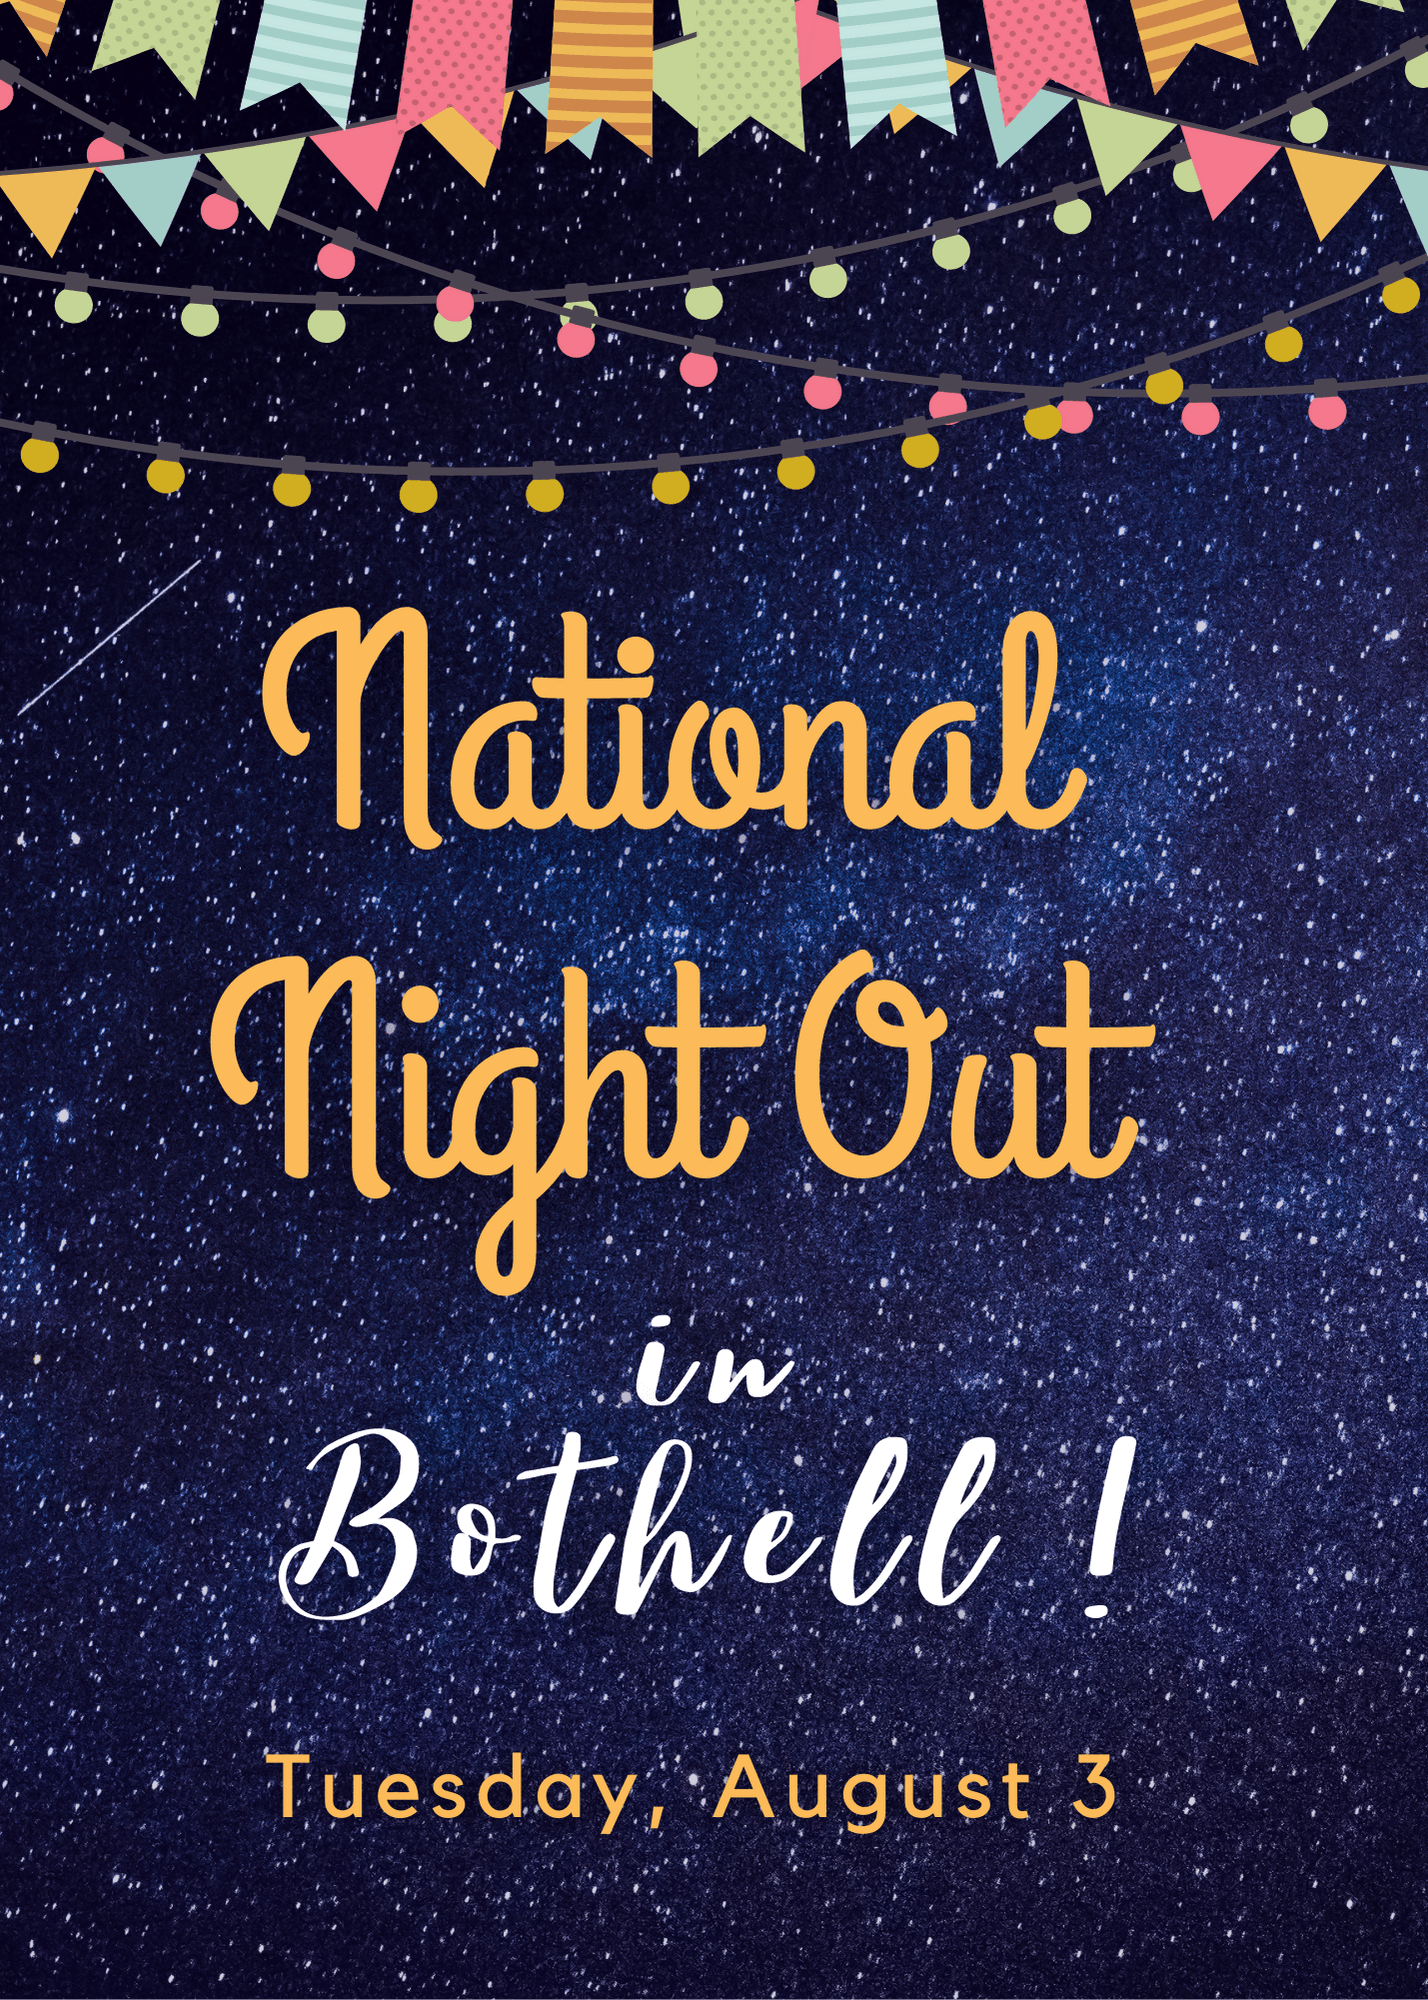 starry night sky with words National Night Out in Bothell: Tuesday, August 3